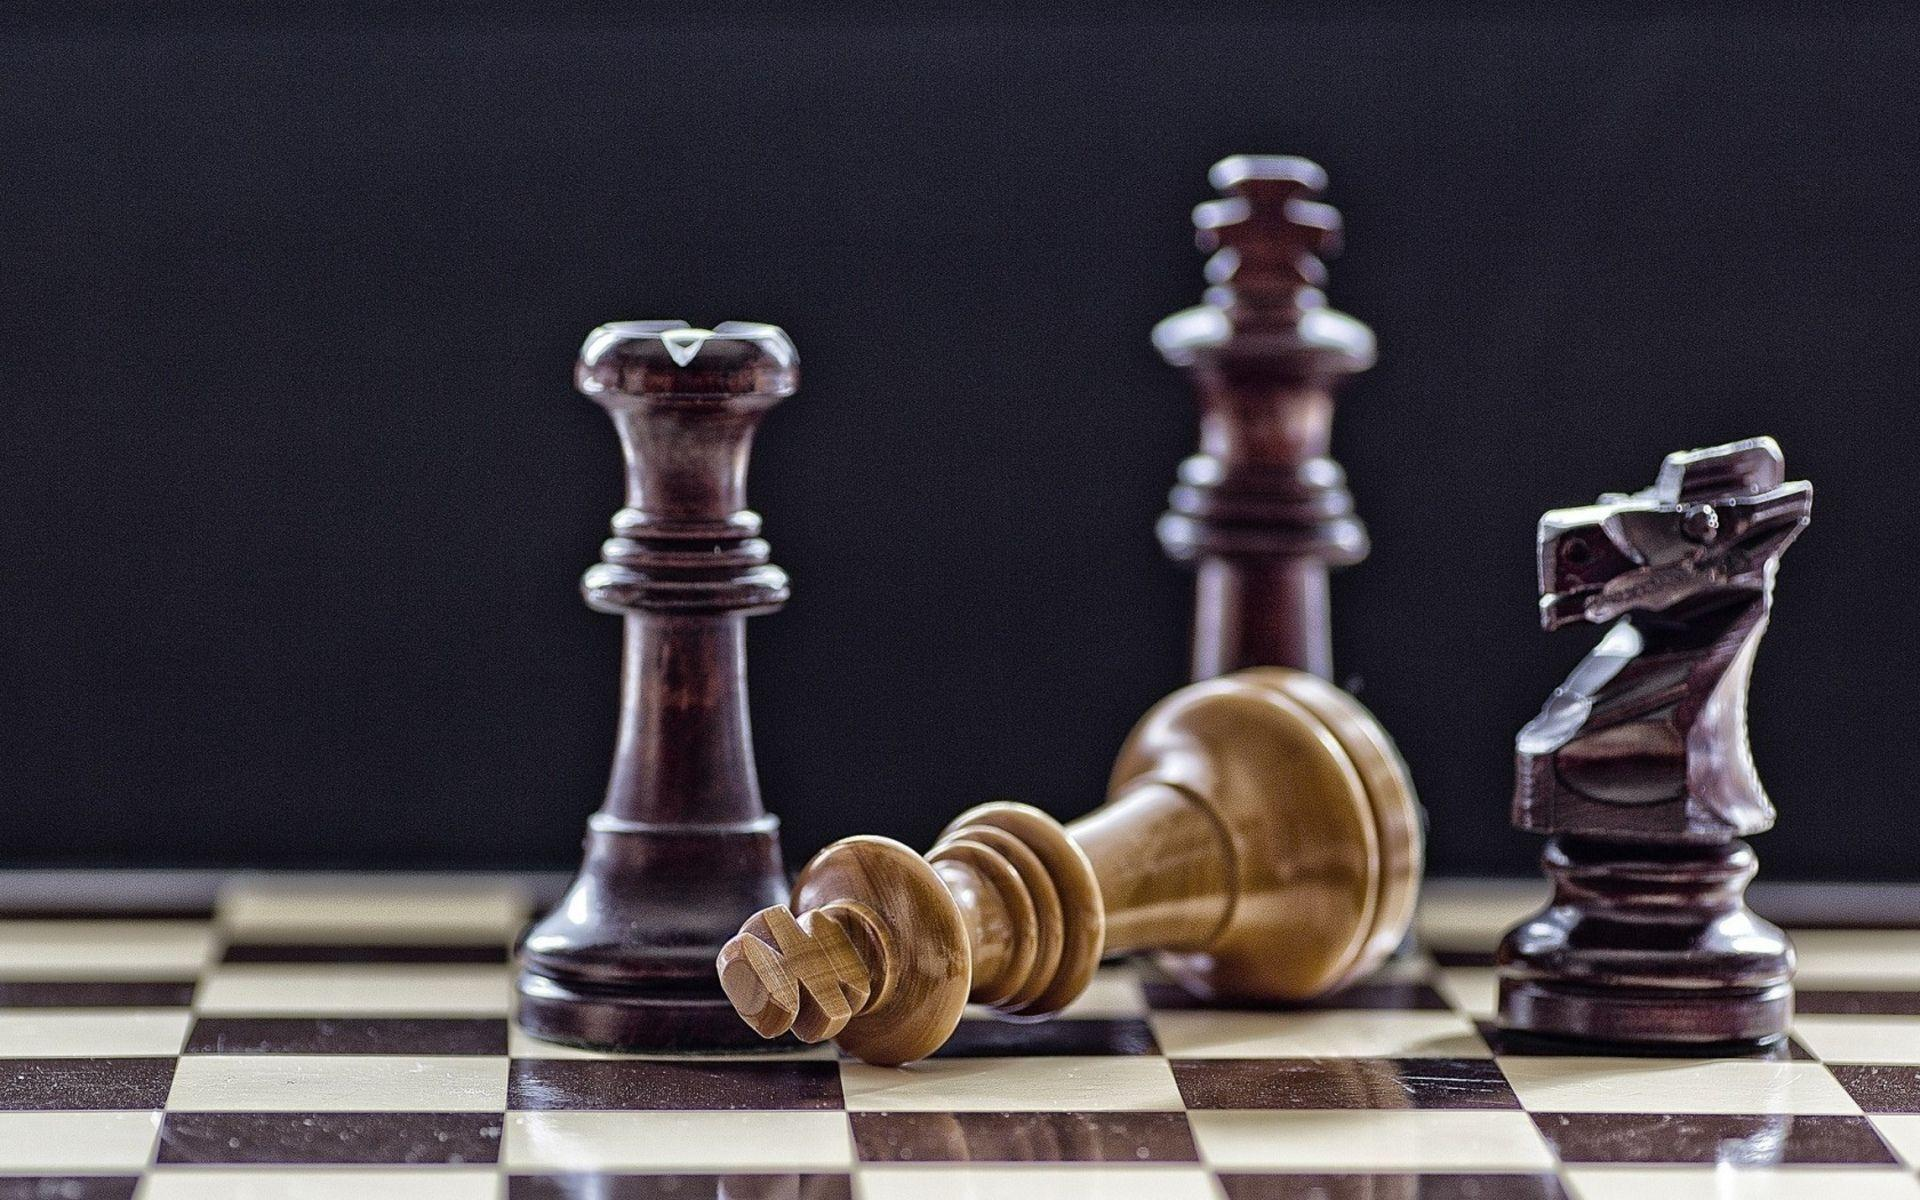 Chess Computer Wallpapers, Desktop Backgrounds 1920x1200 Id: 381340